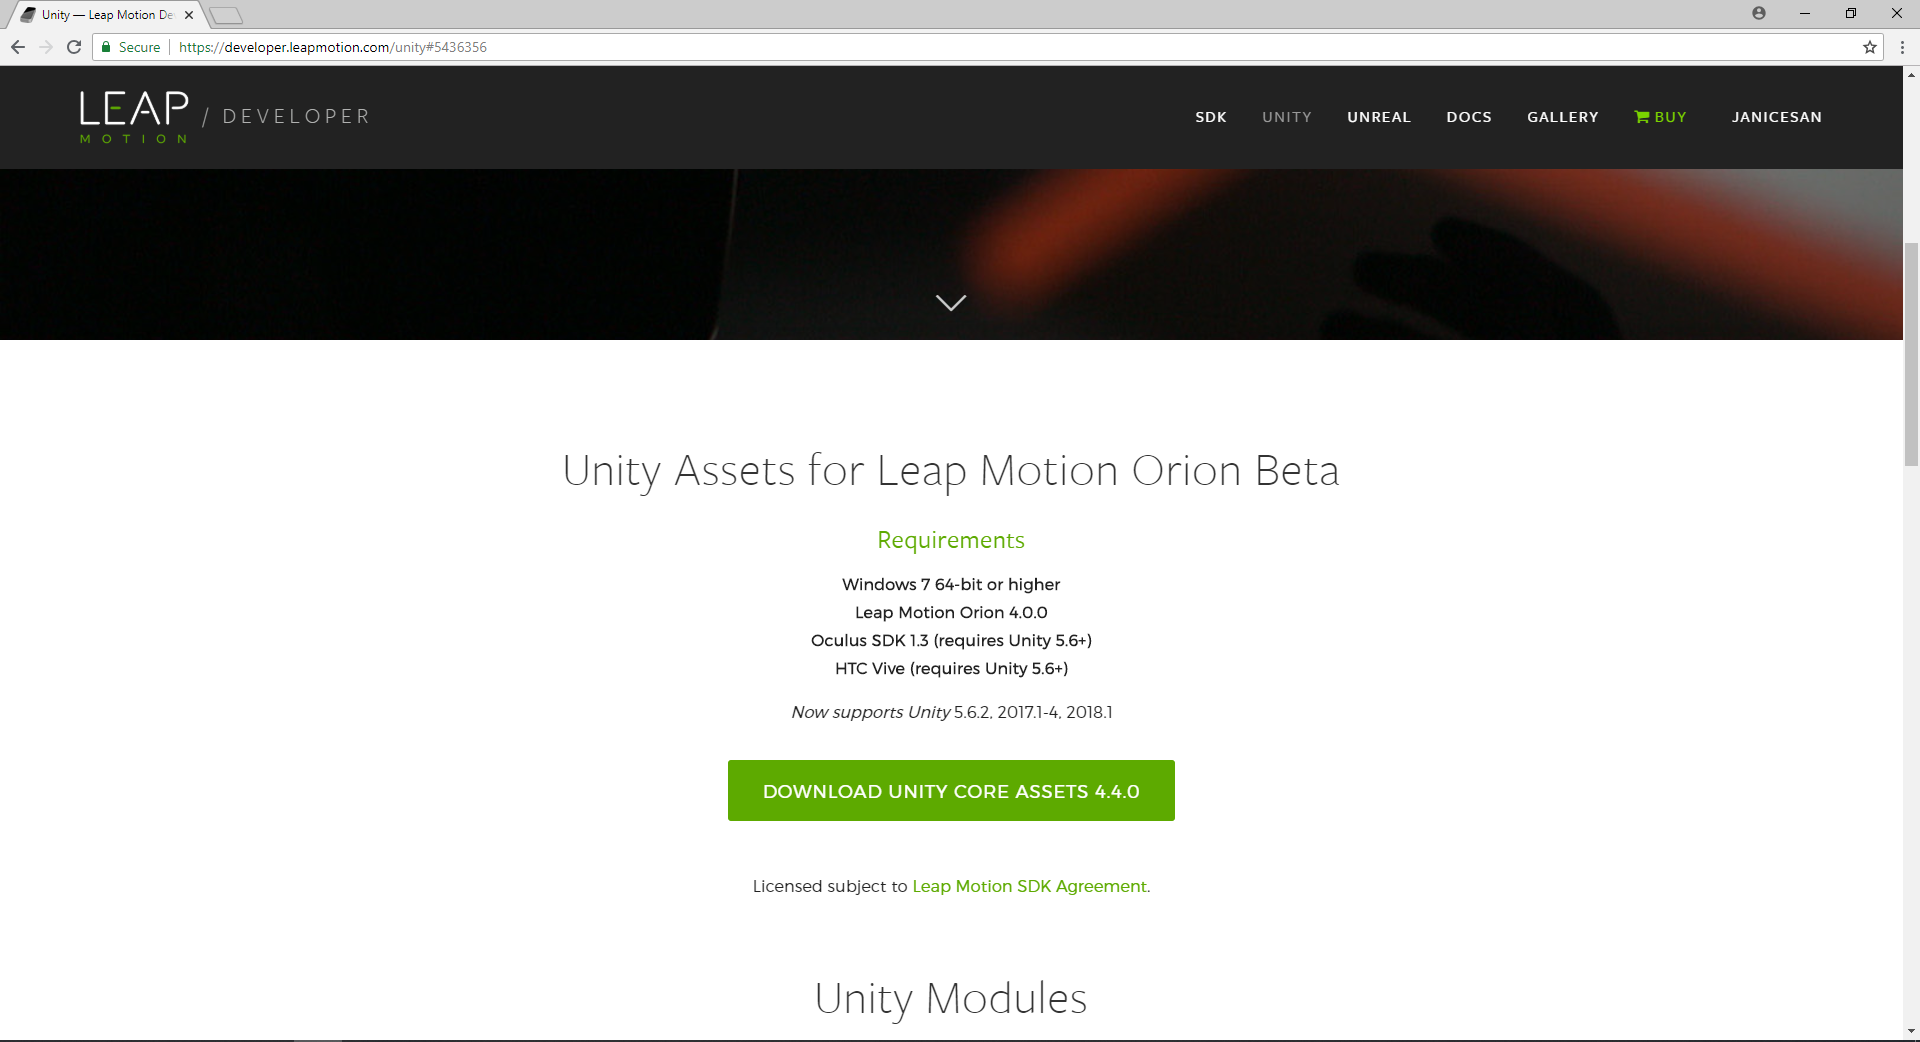 Learning journal: Moving an object via Leap Motion in Unity – Janice